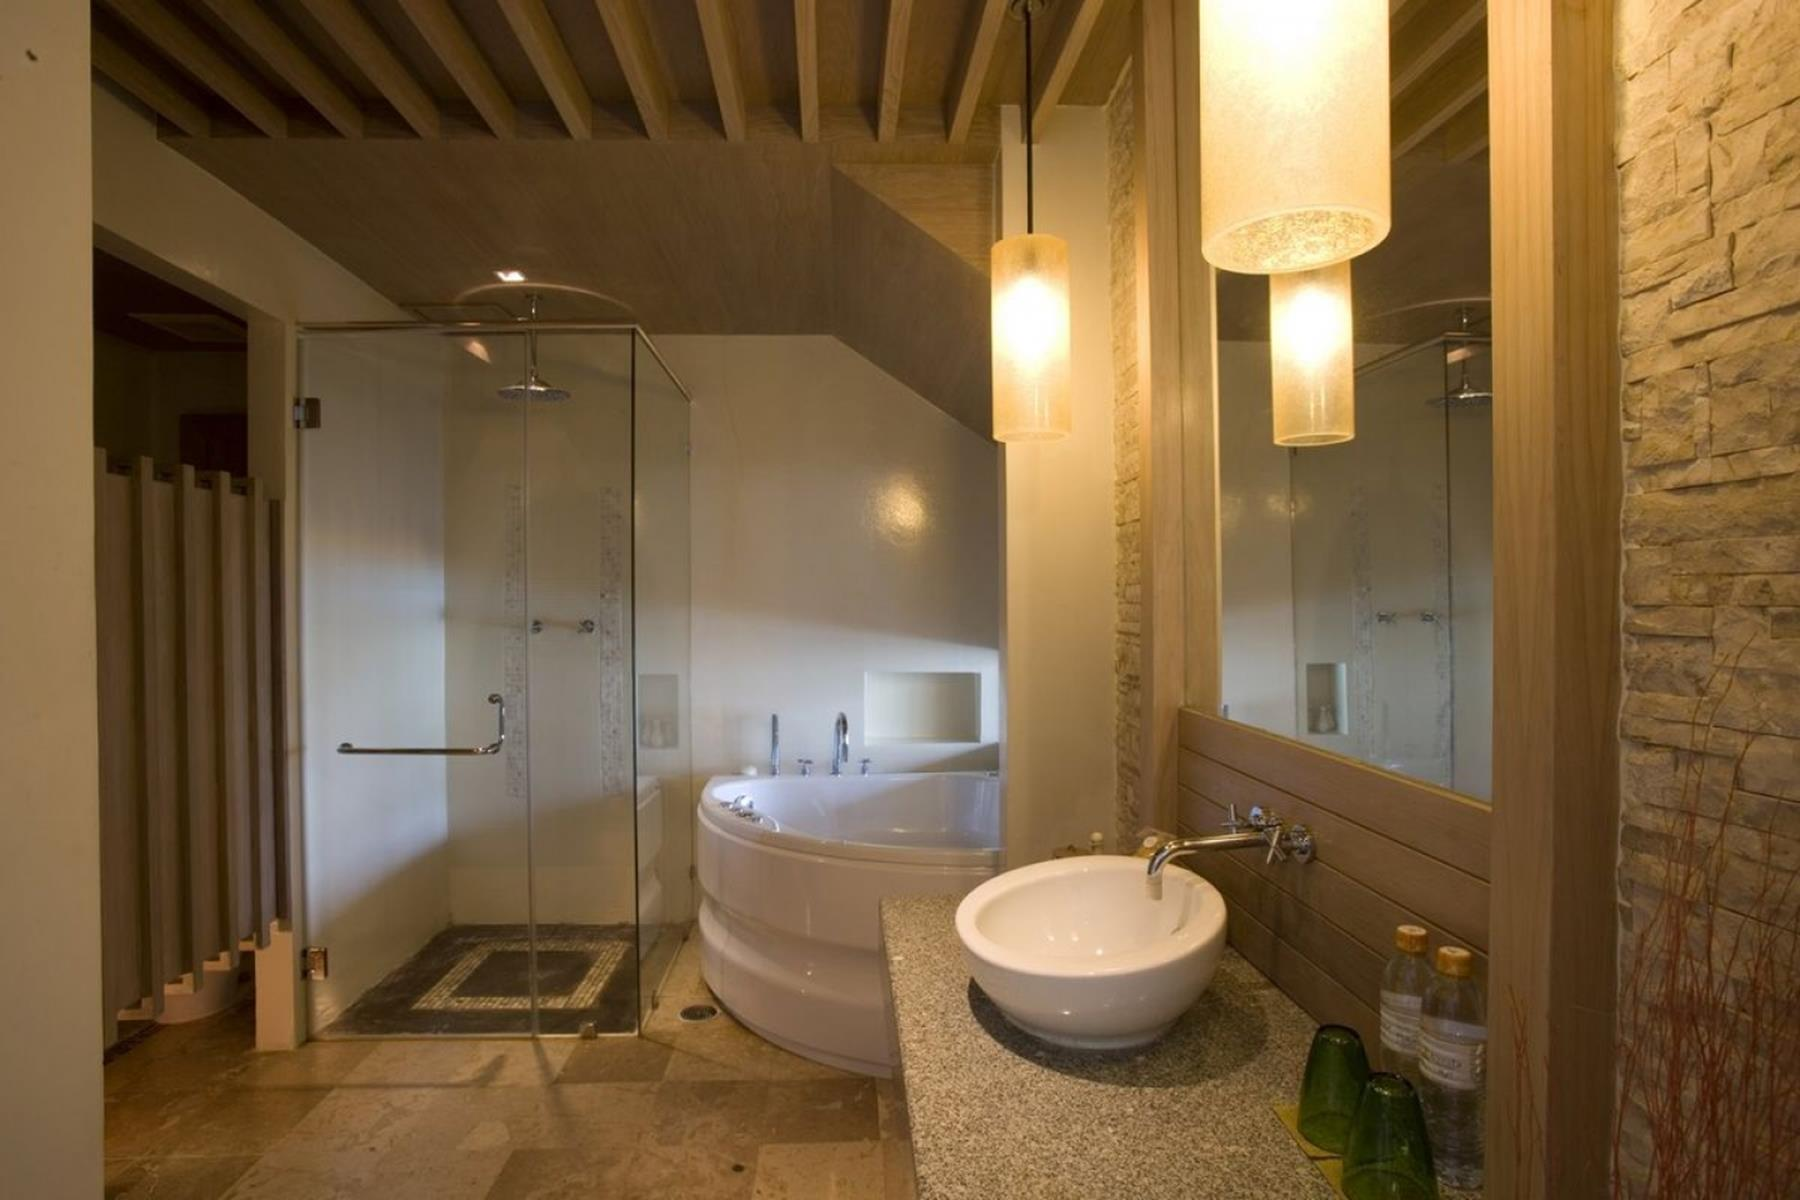 Spa Bathroom Remodel For Small Space 32